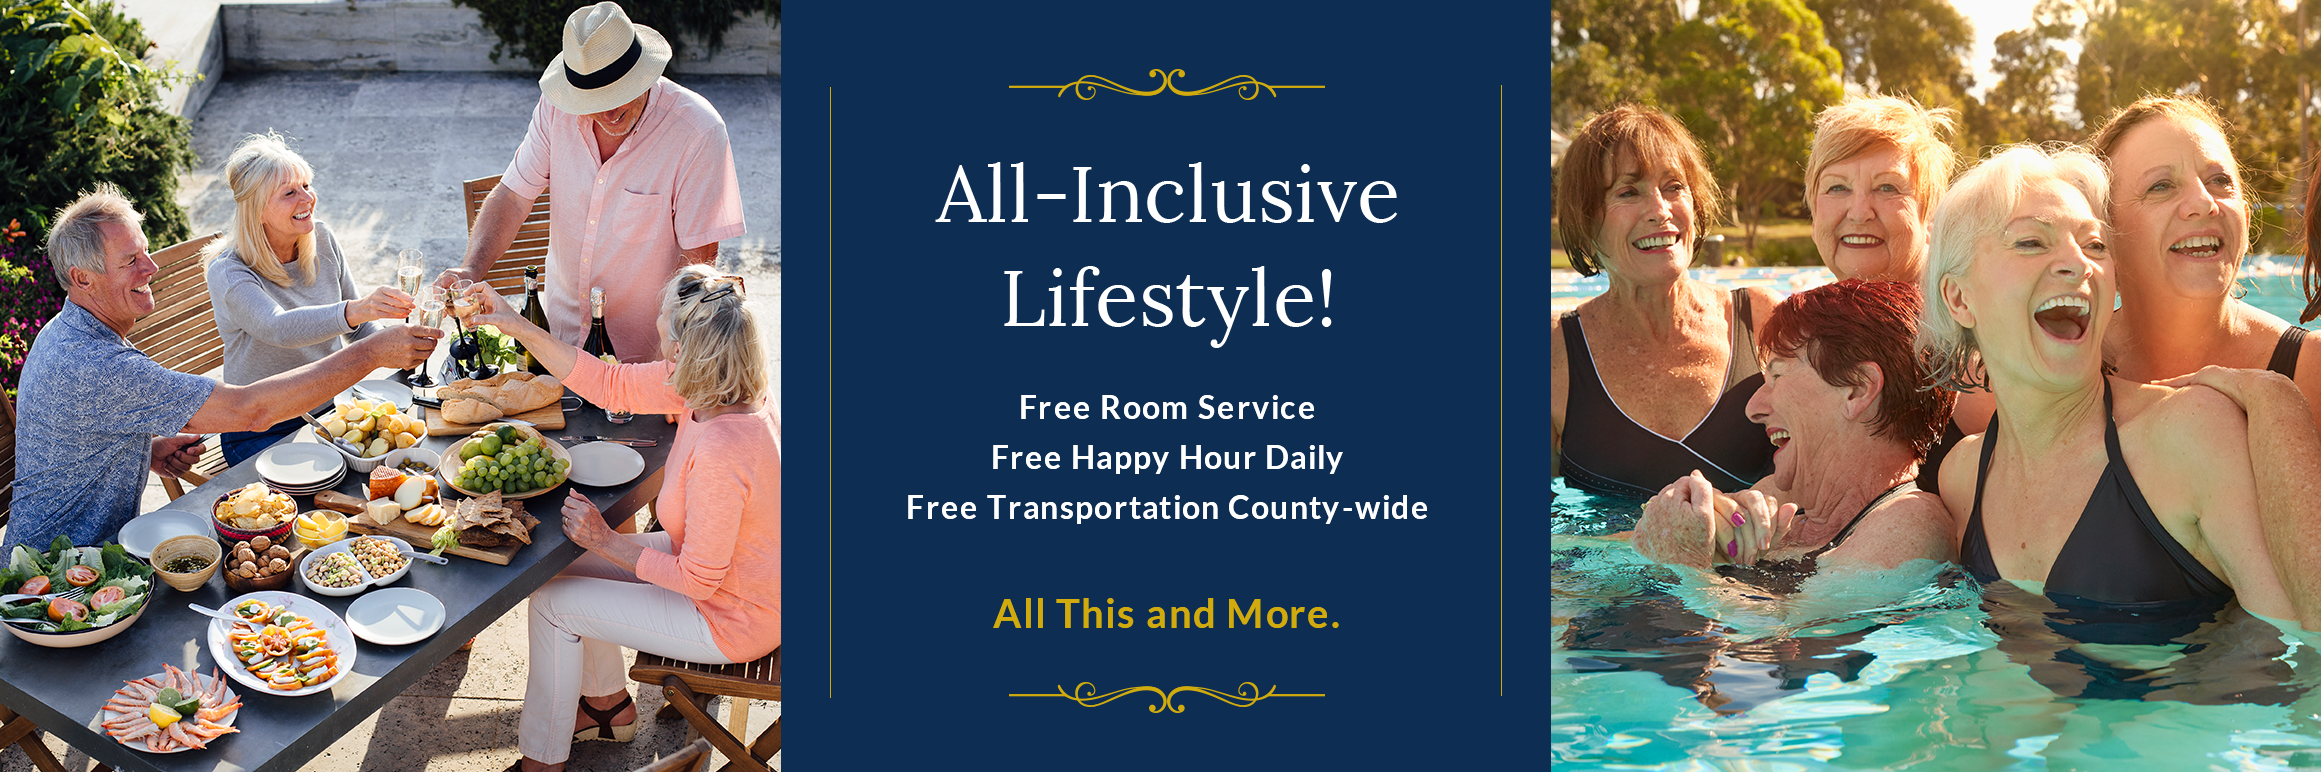 All-Inclusive Lifestyle! Free Room Service Free Happy Hour Daily Free Transportation County-wide All This and More.